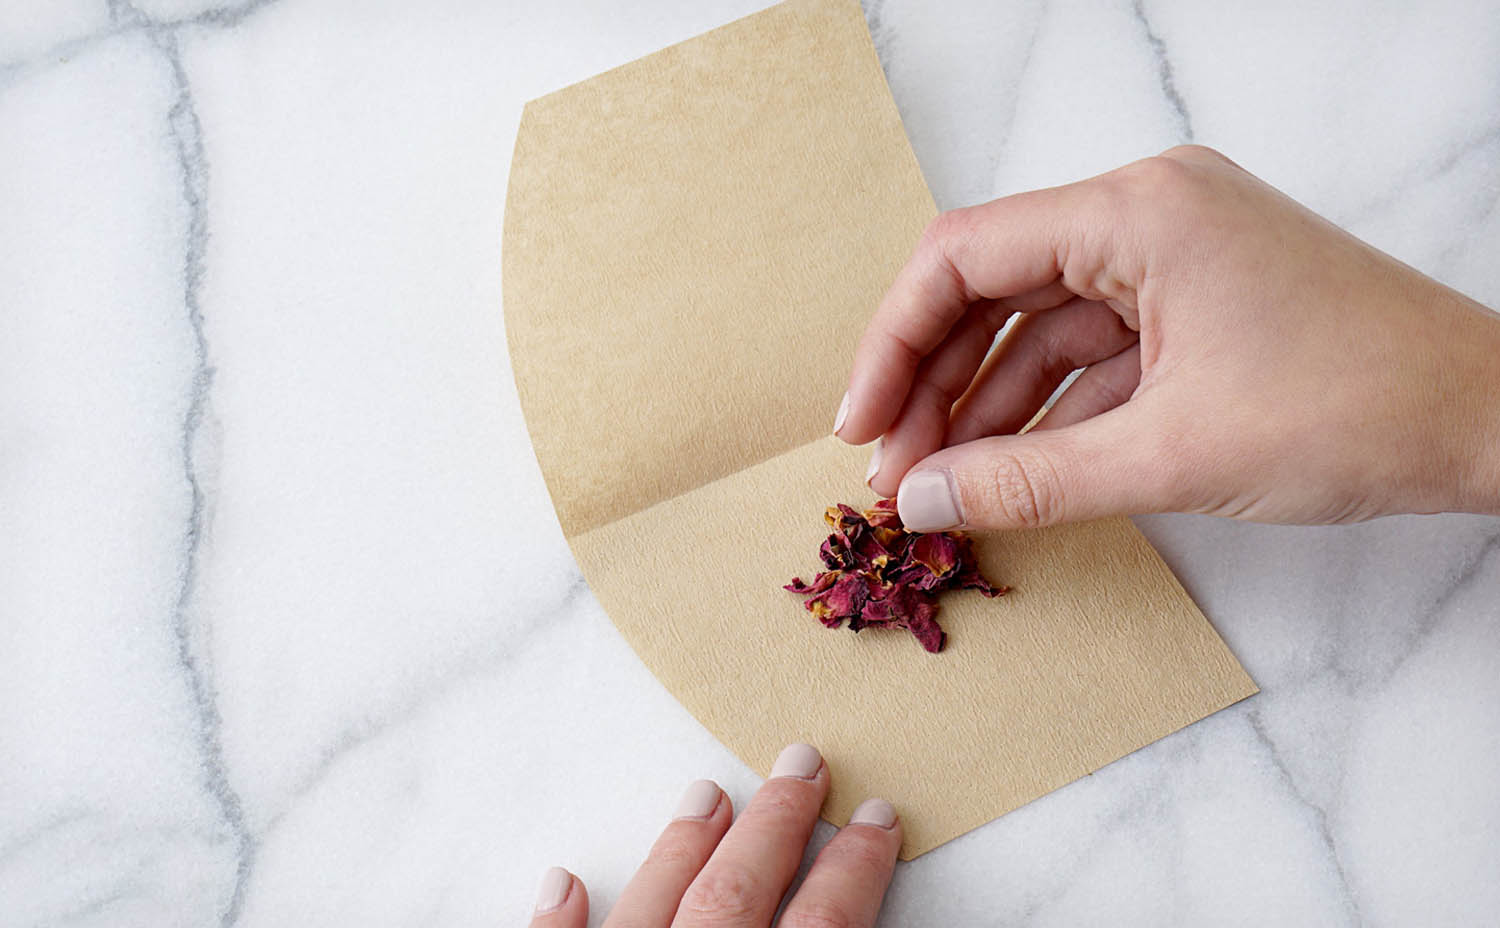 Loose dried flower petals being sprinkled onto coffee filter paper